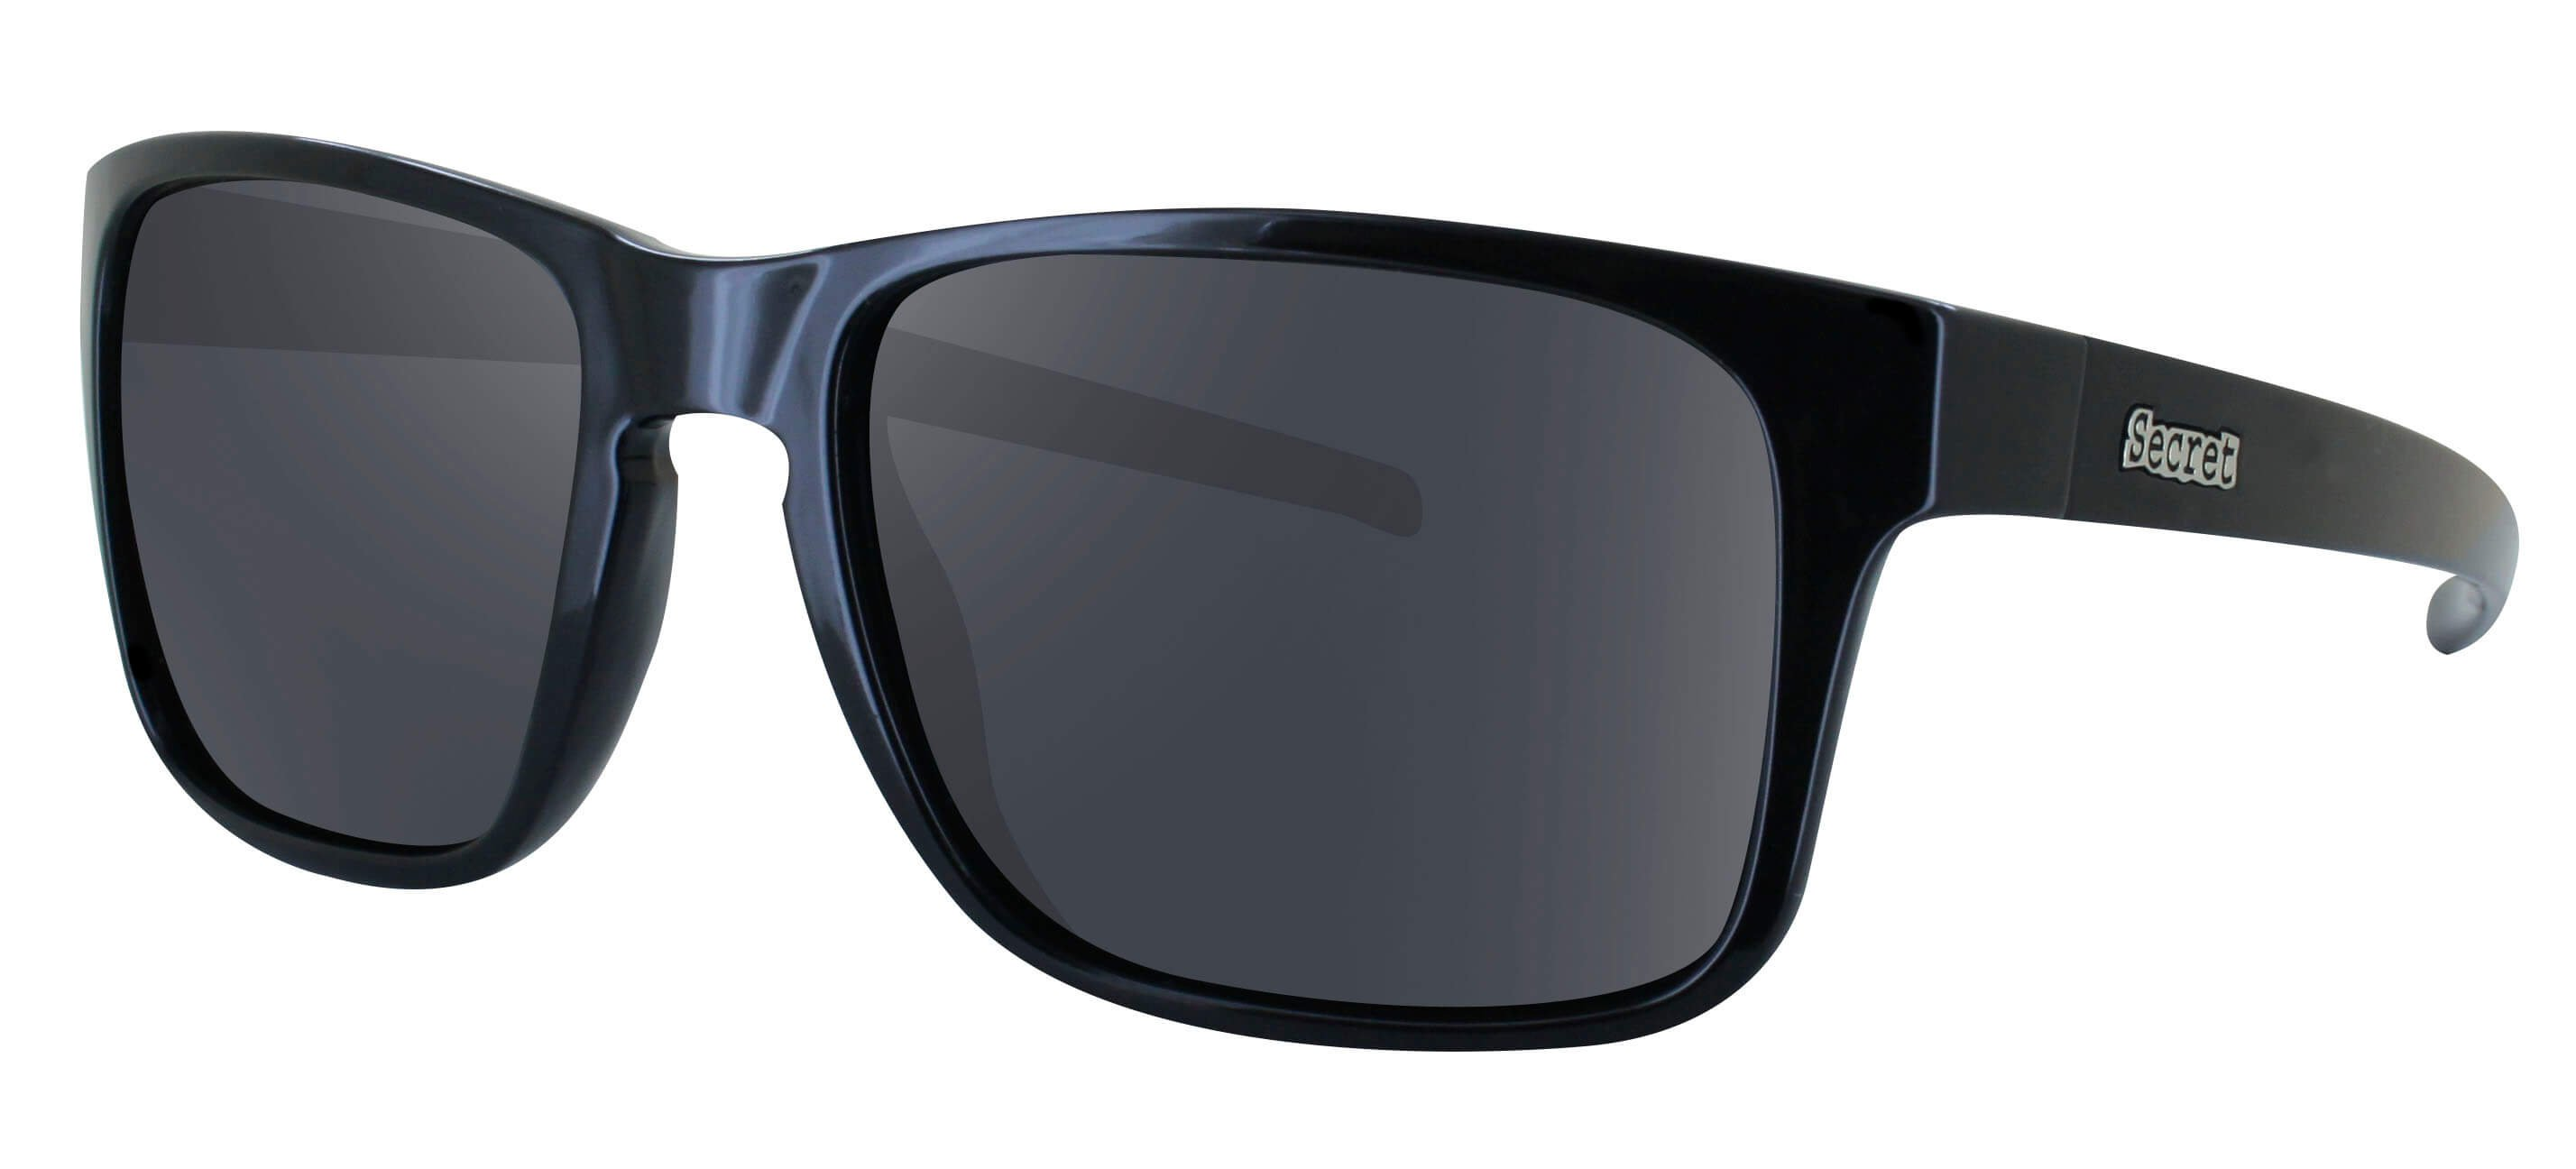 ÓC SECRET MOTLEY GLOSS BLACK / POLARIZED GRAY